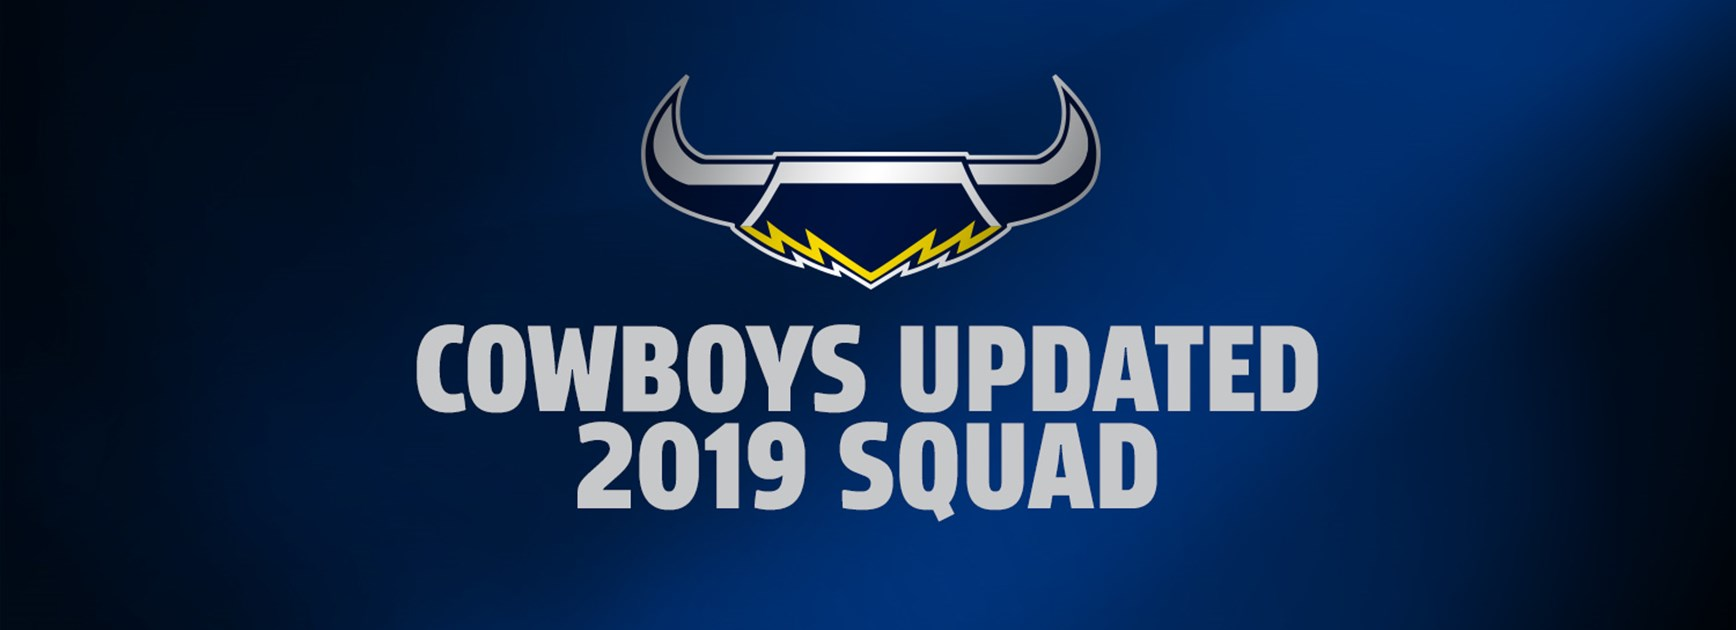 Updated 2019 Cowboys roster